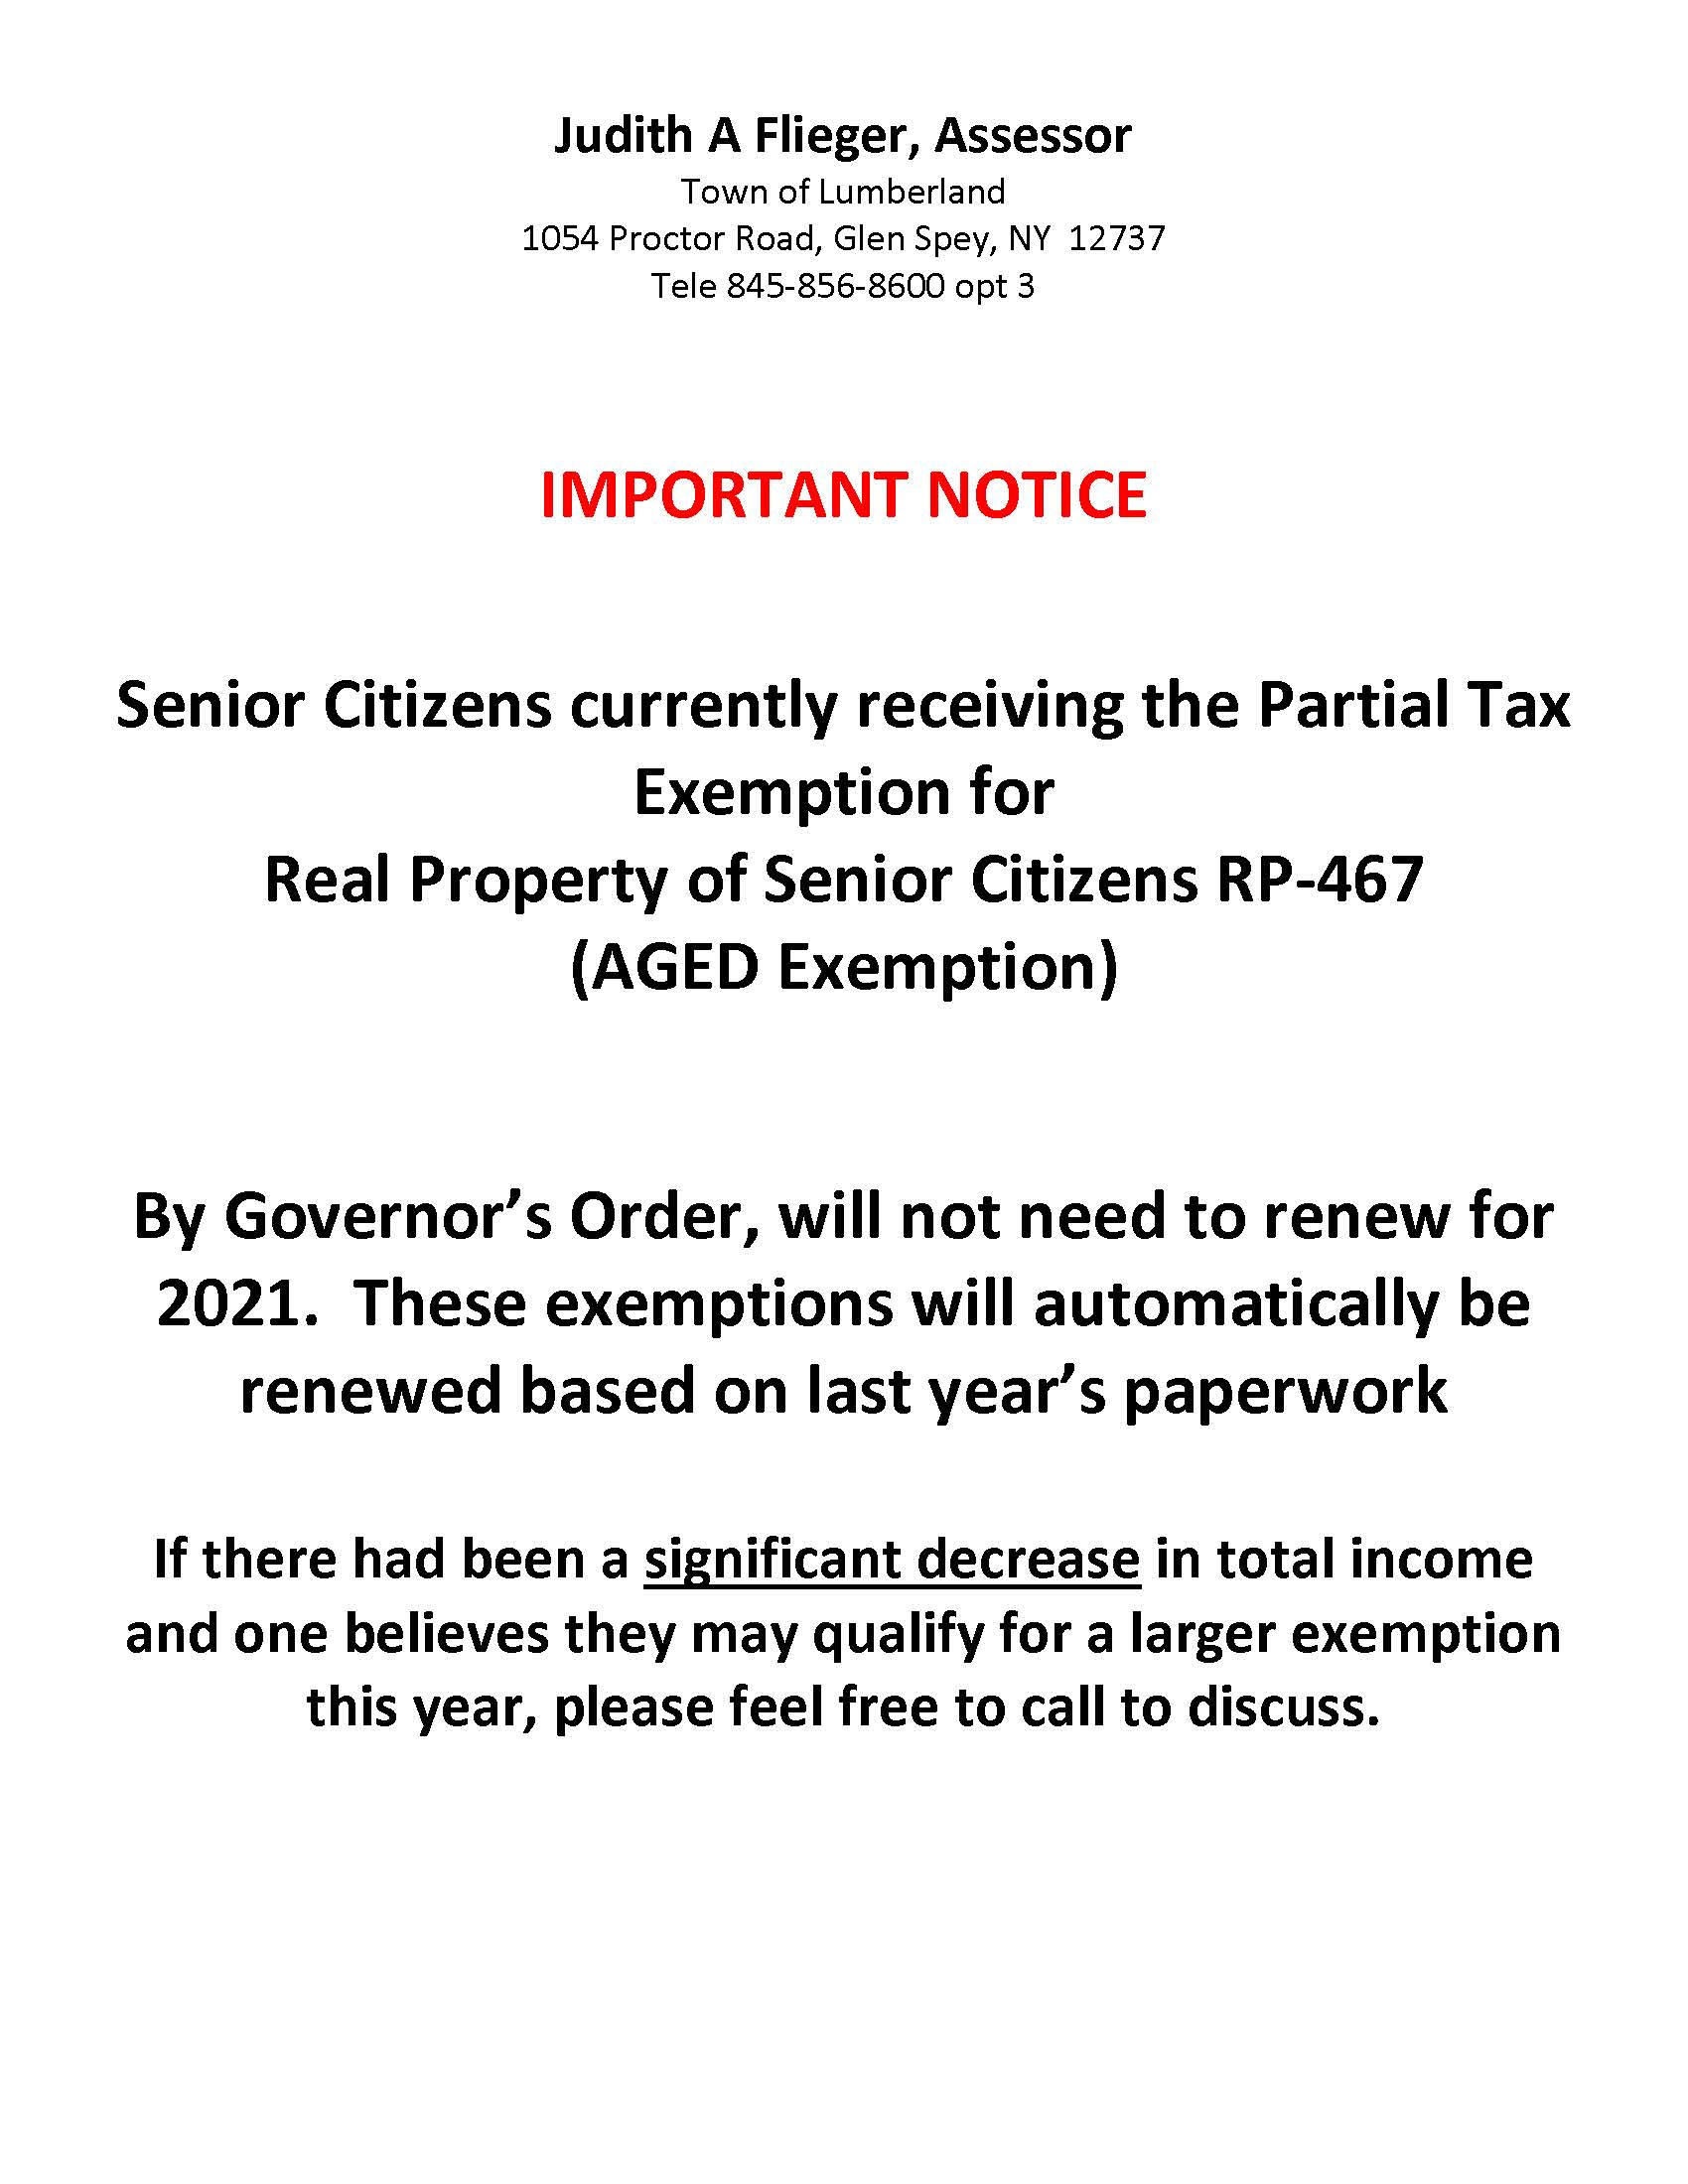 Governors Mandatory Senior Citizen Exemption Renewal